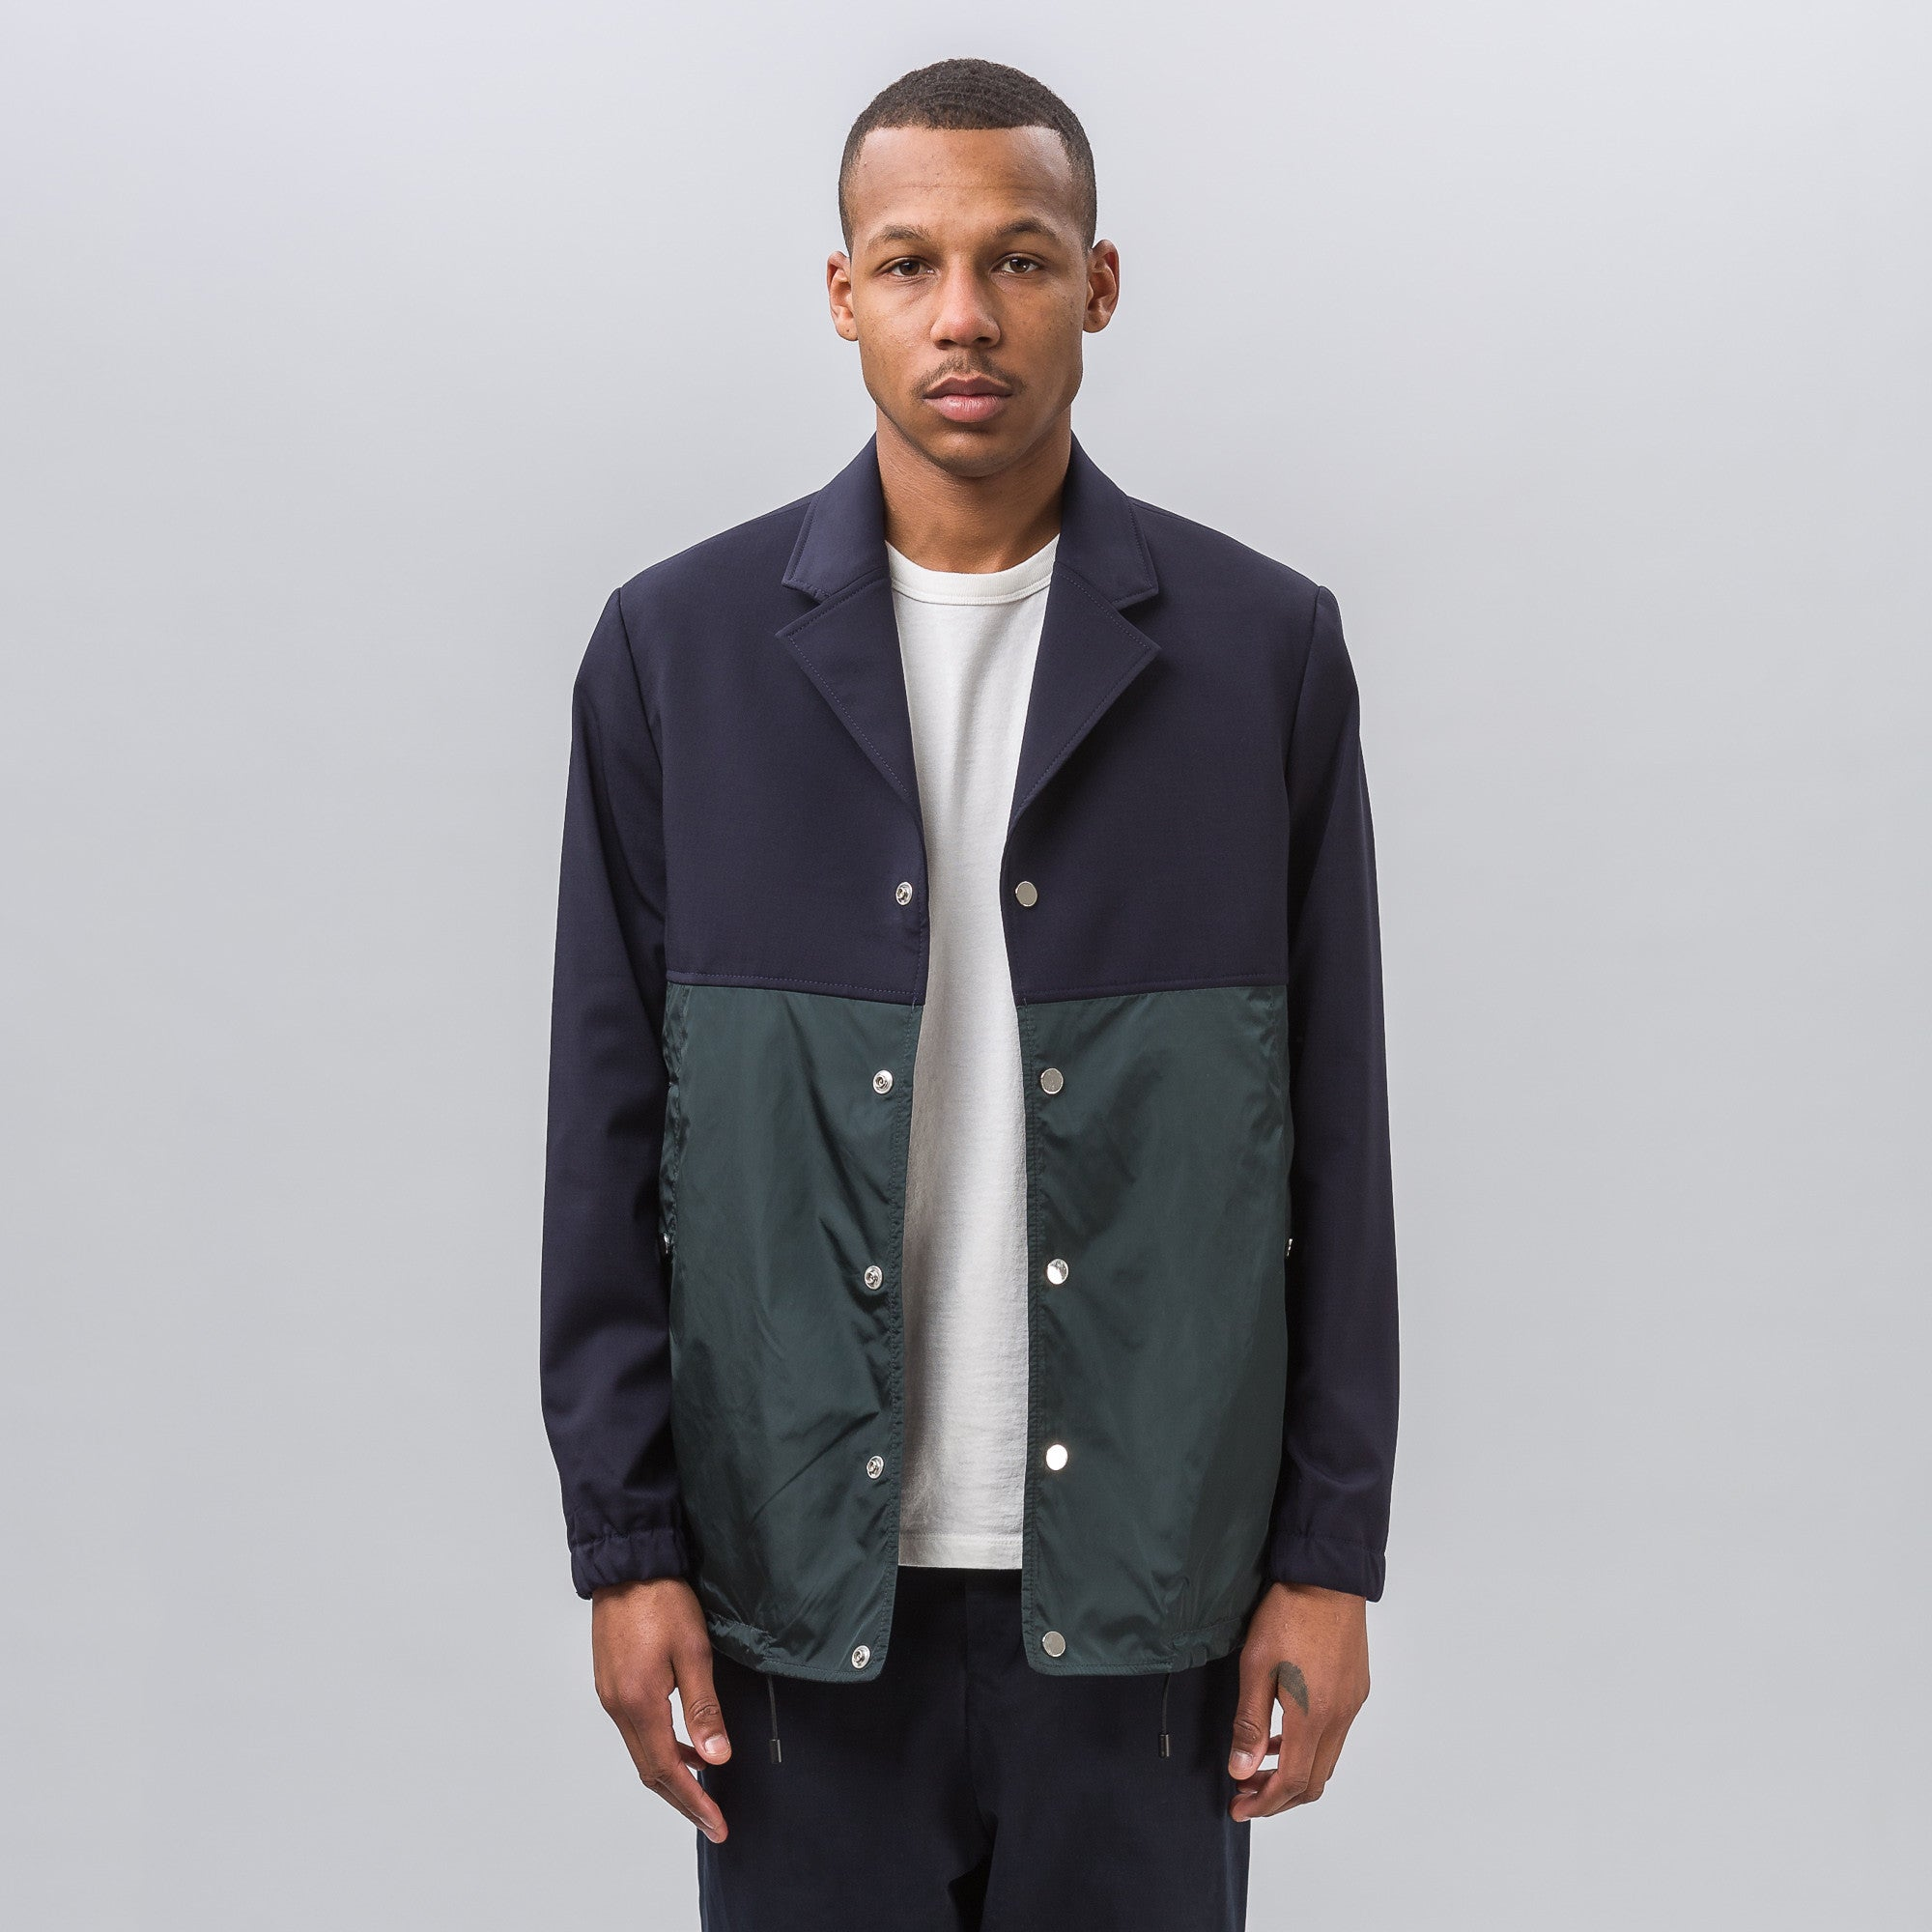 Coach Jacket in Navy/Dark Green